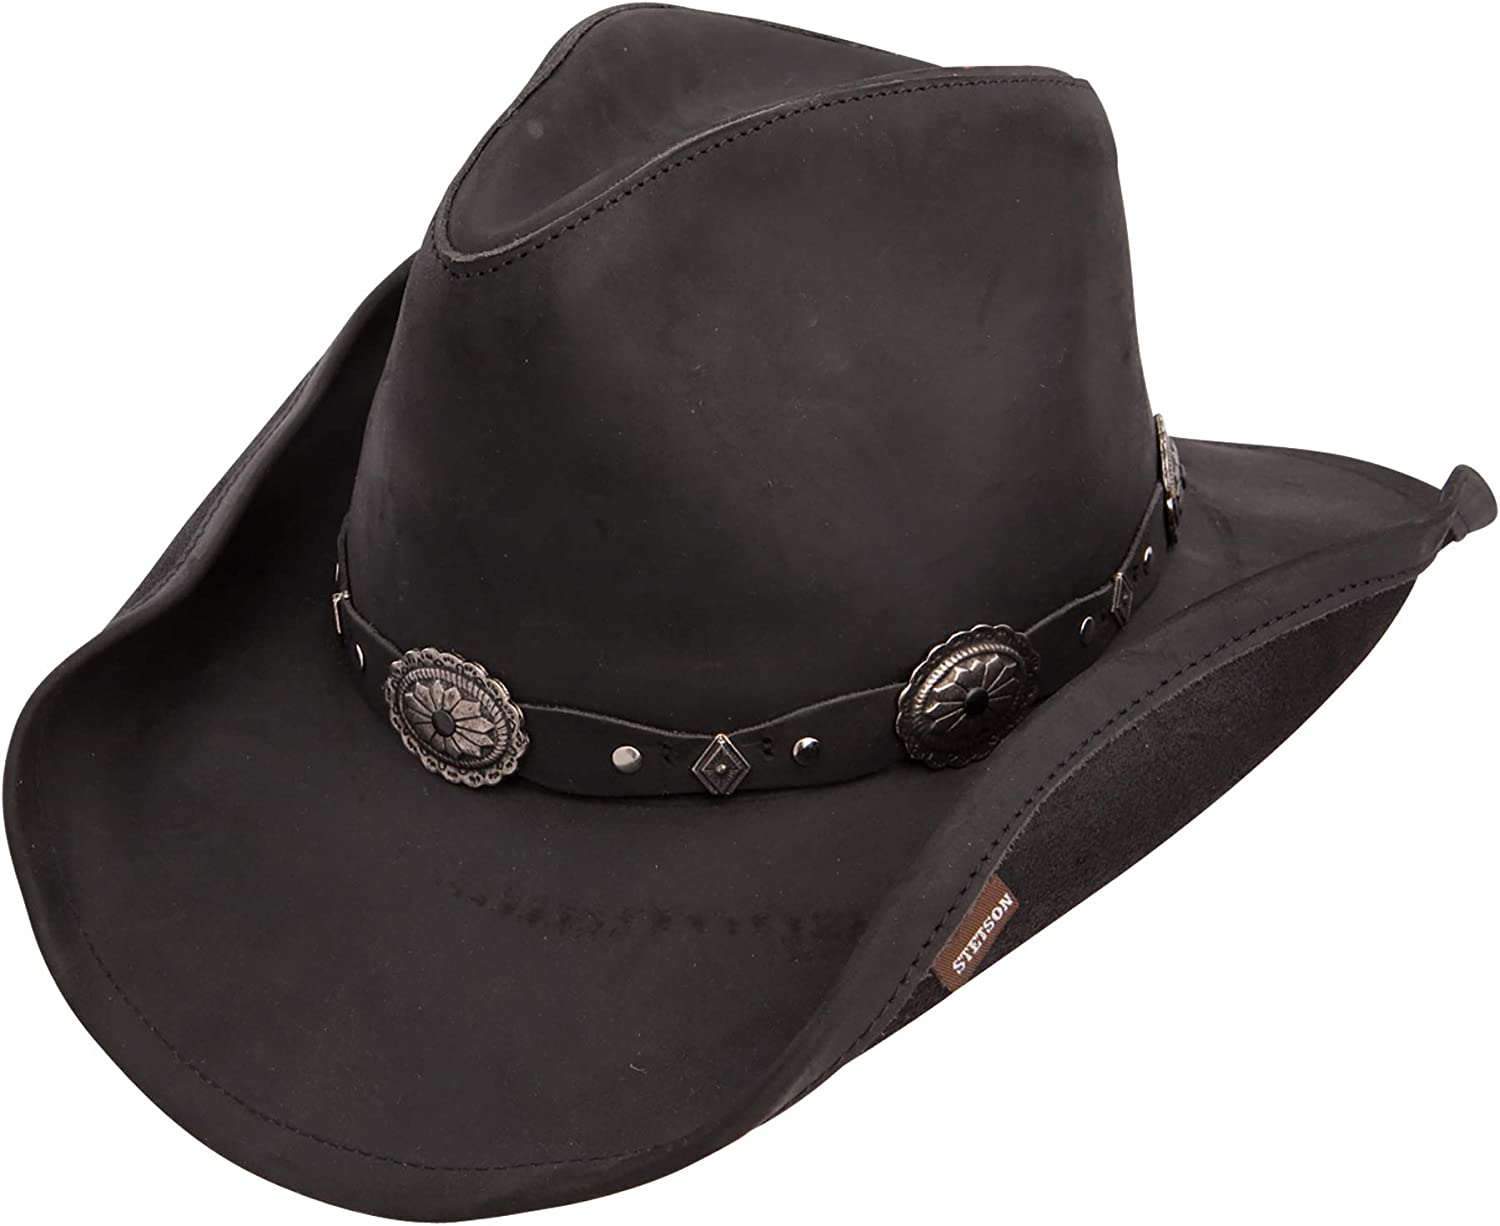 Stetson Roxbury Shapeable Leather Cowboy Western Hat